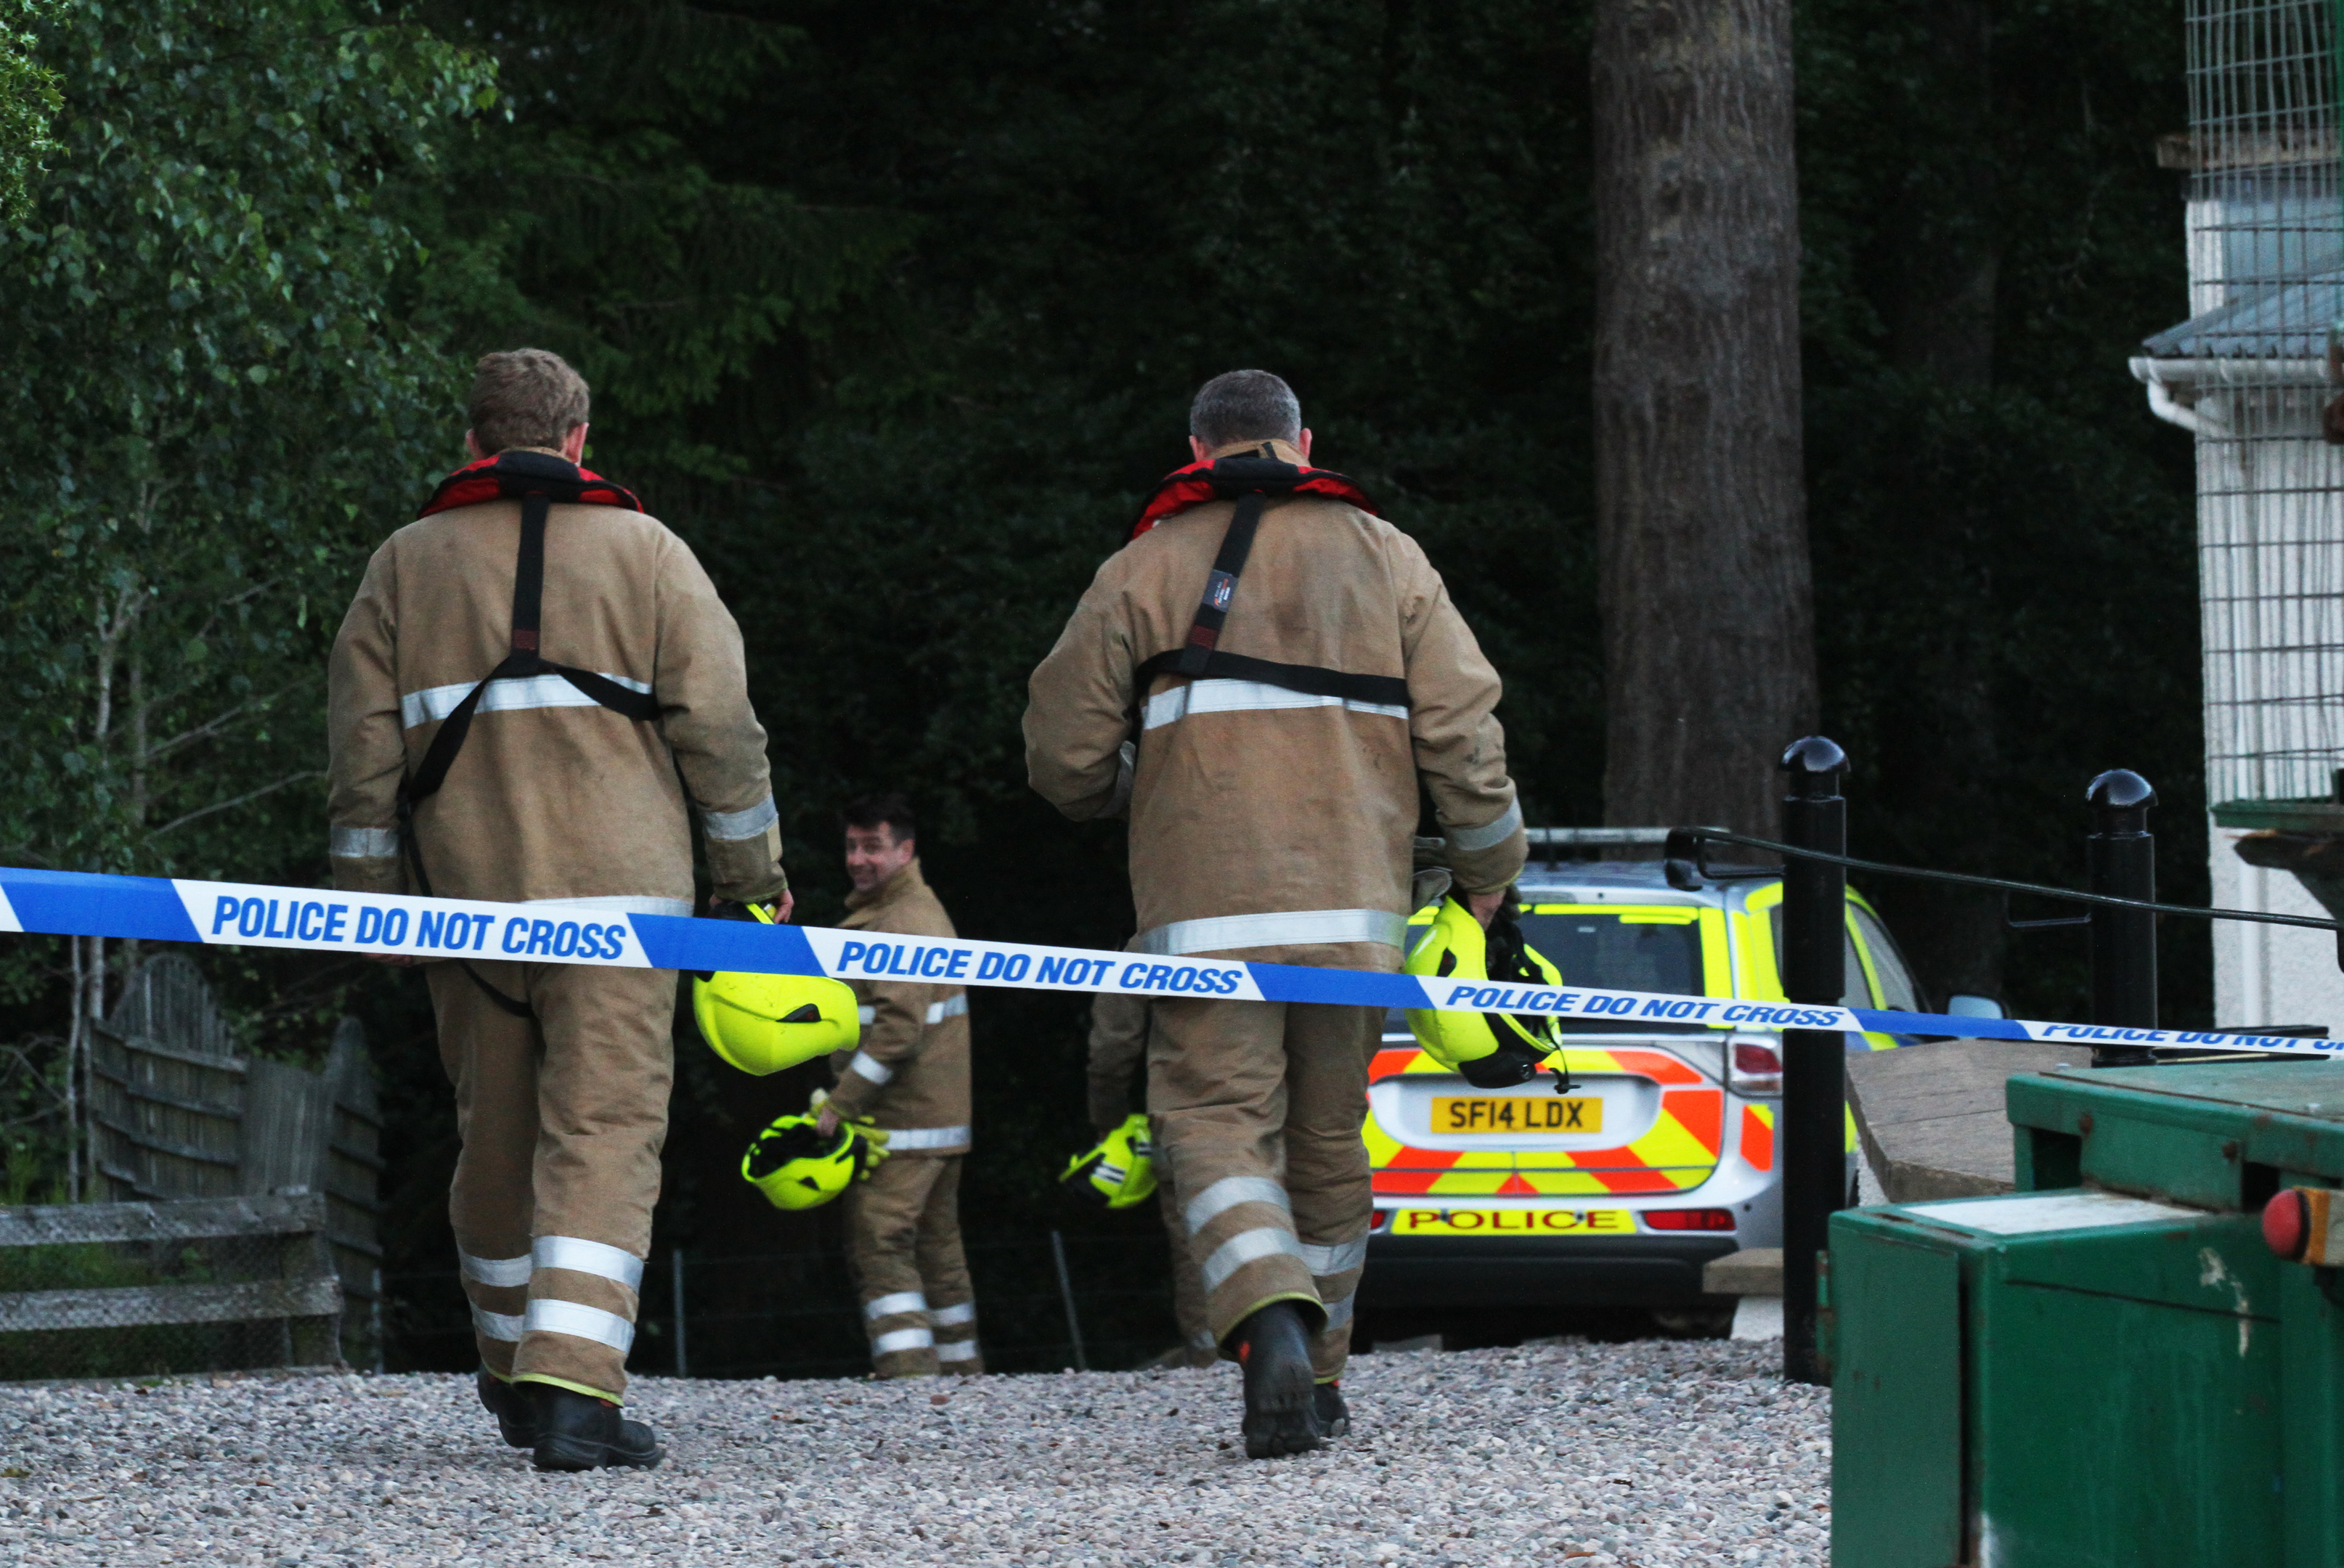 Fire and rescue crews going down to the scene after the tragedy in July.